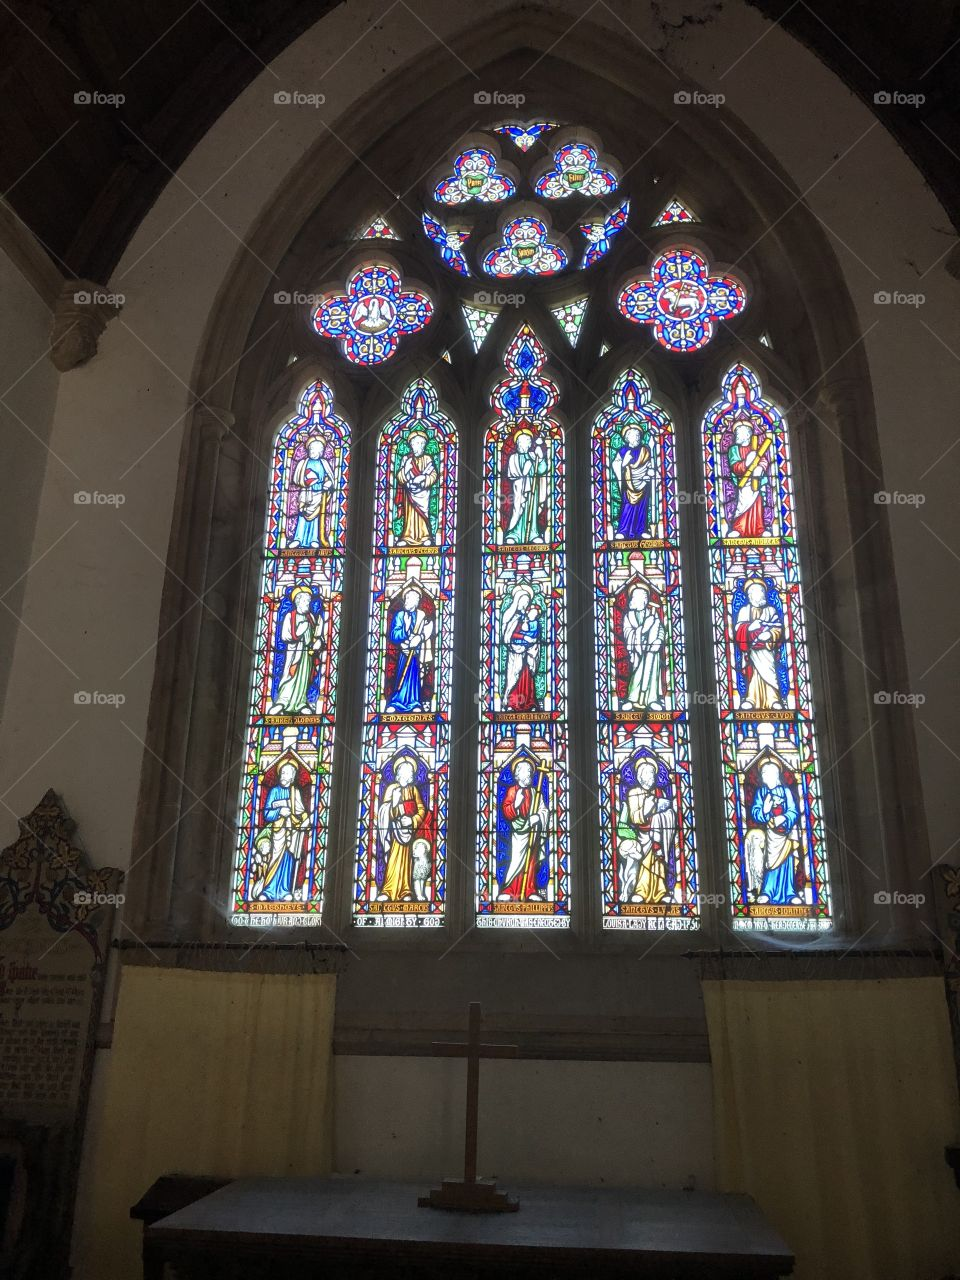 One of a number of beautiful stained glass windows to be found at St Mary's Church at Bicton, Devon.